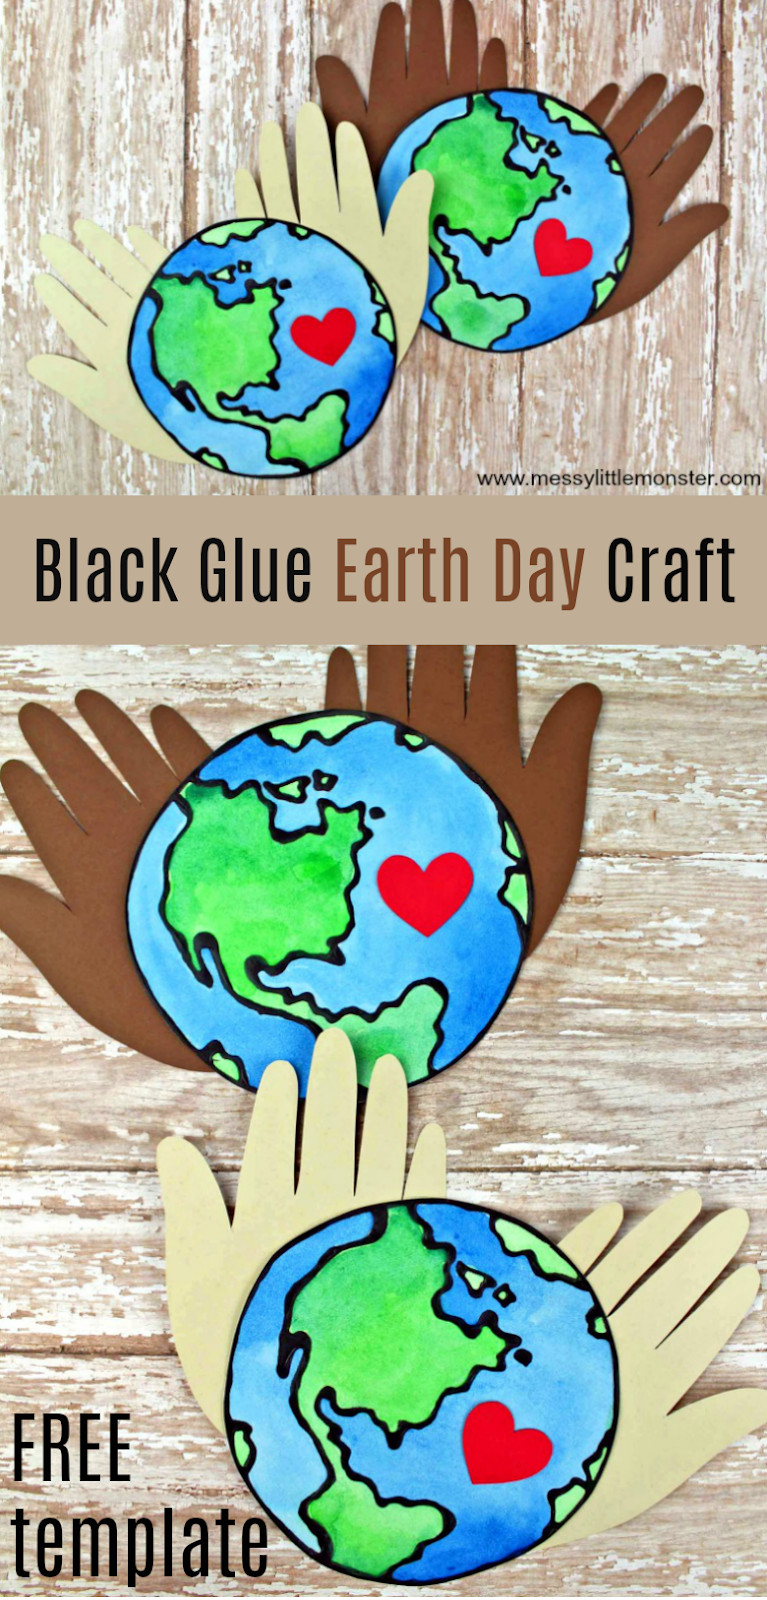 Earth Day Craft Ideas For Preschoolers  Earth Day Black Glue Craft a stunning planet earth